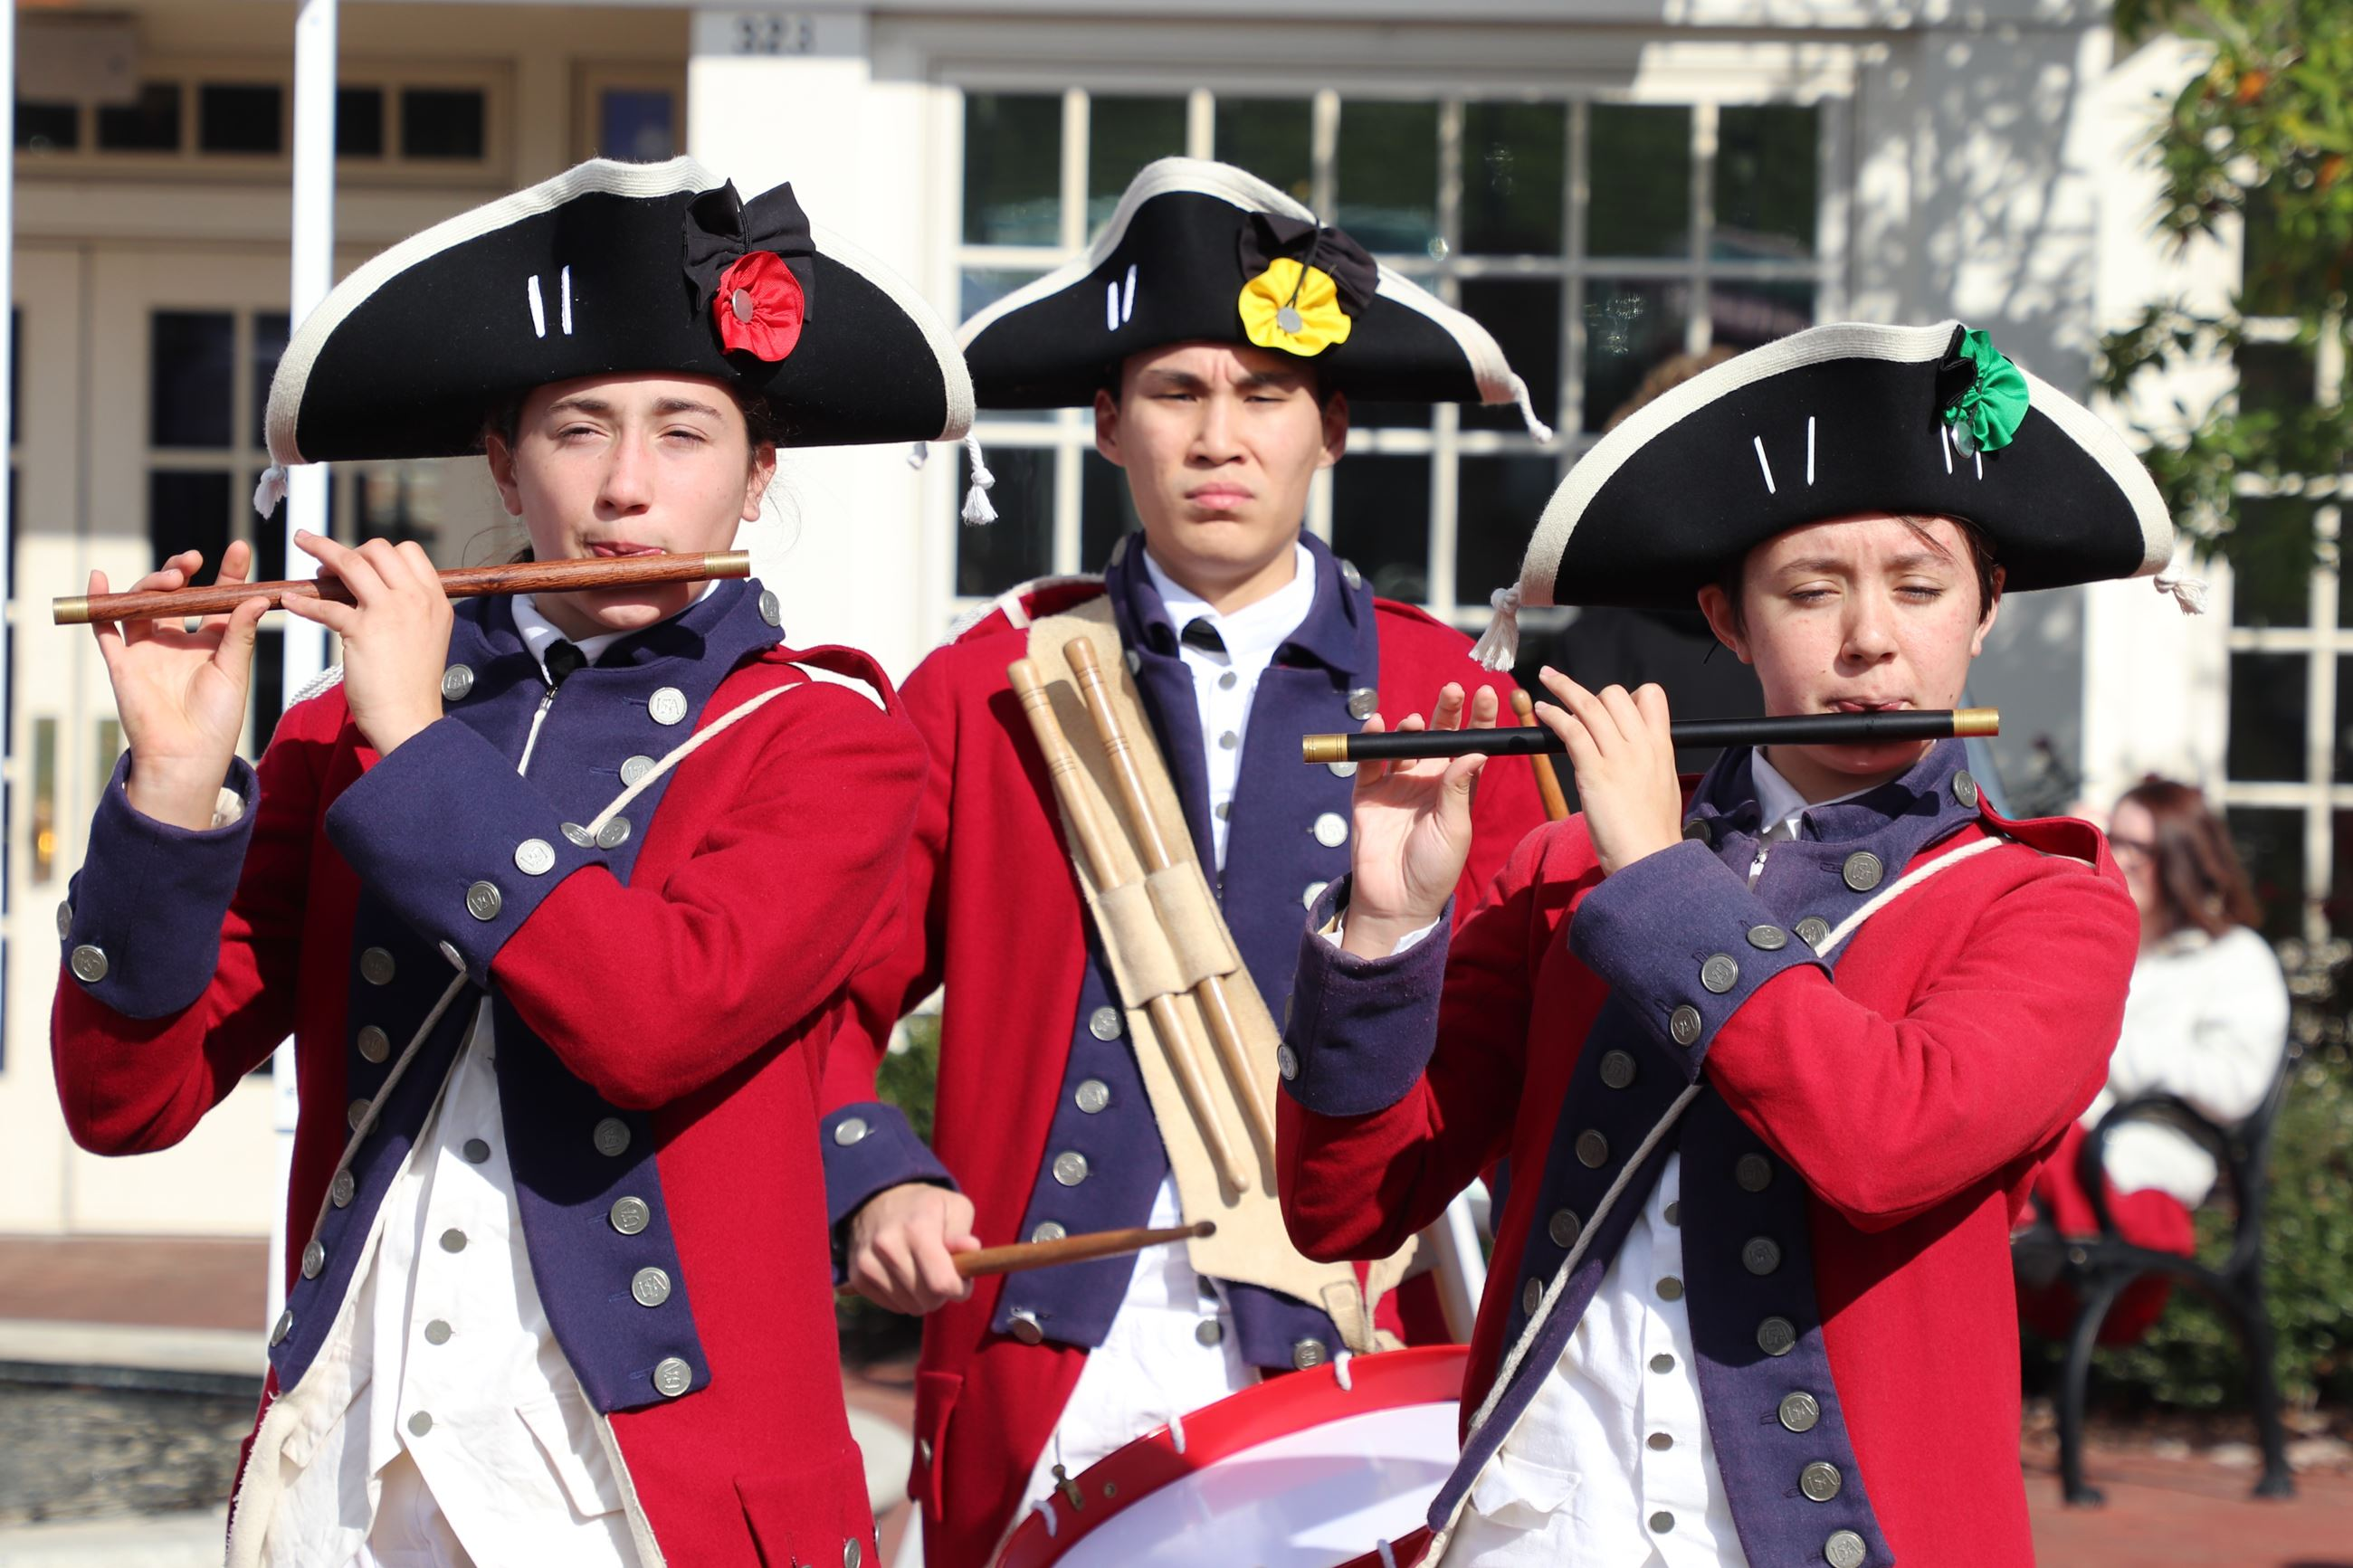 Fifes and Drums at Market